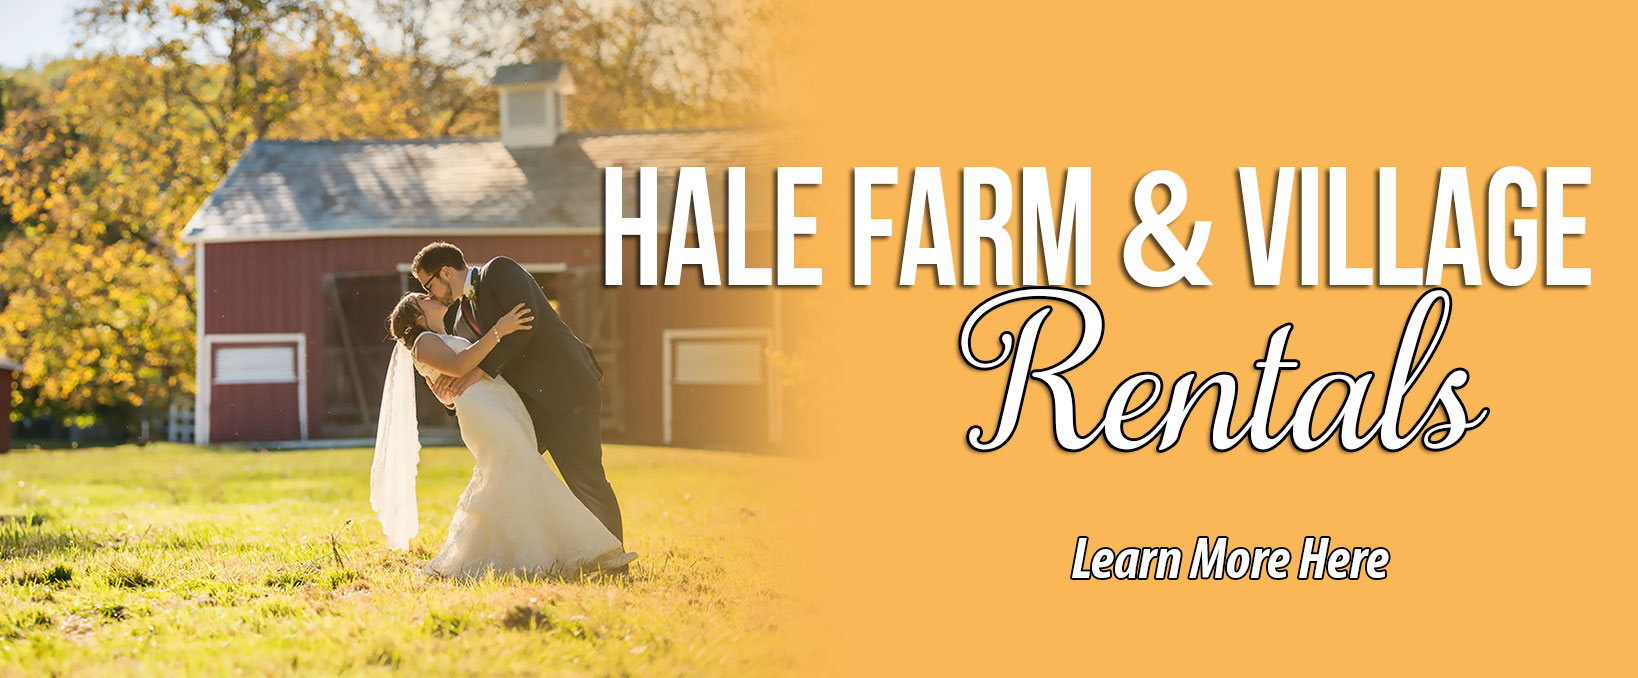 Hale Farm & Village Rentals 2020